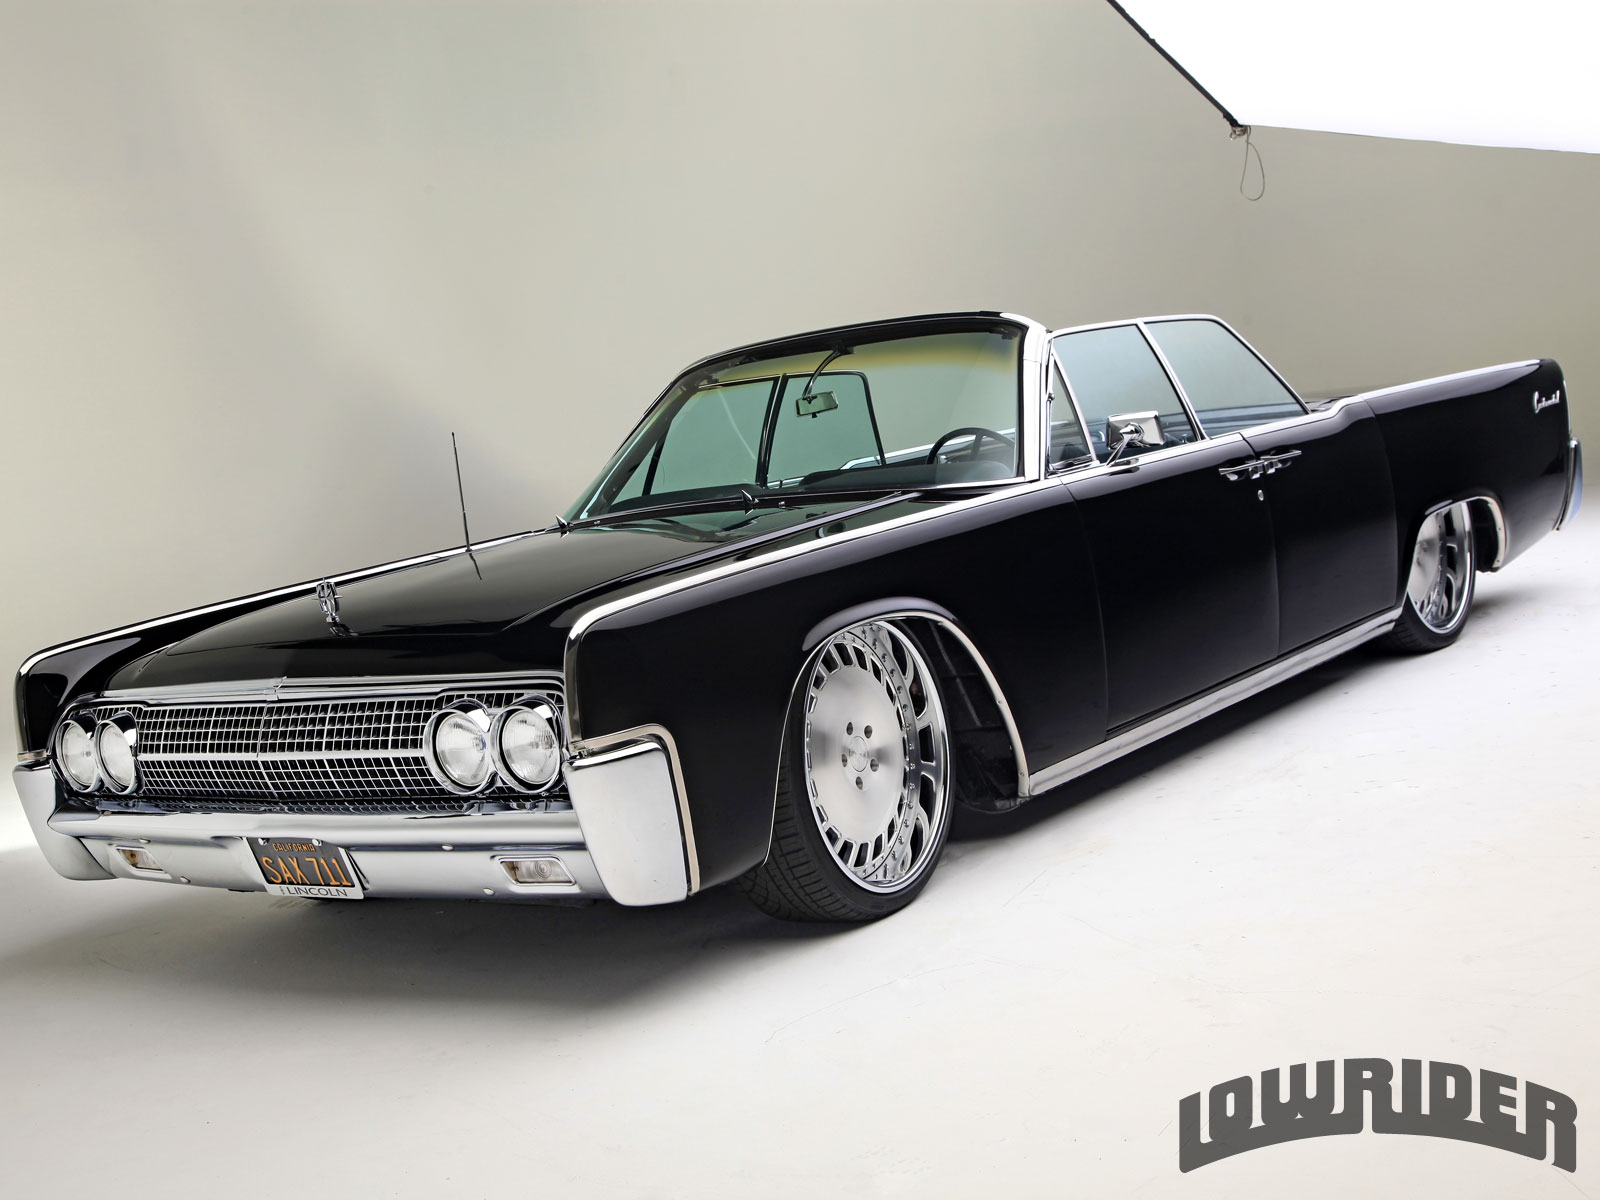 1963 Lincoln Continental Convertible - Lowrider Magazine